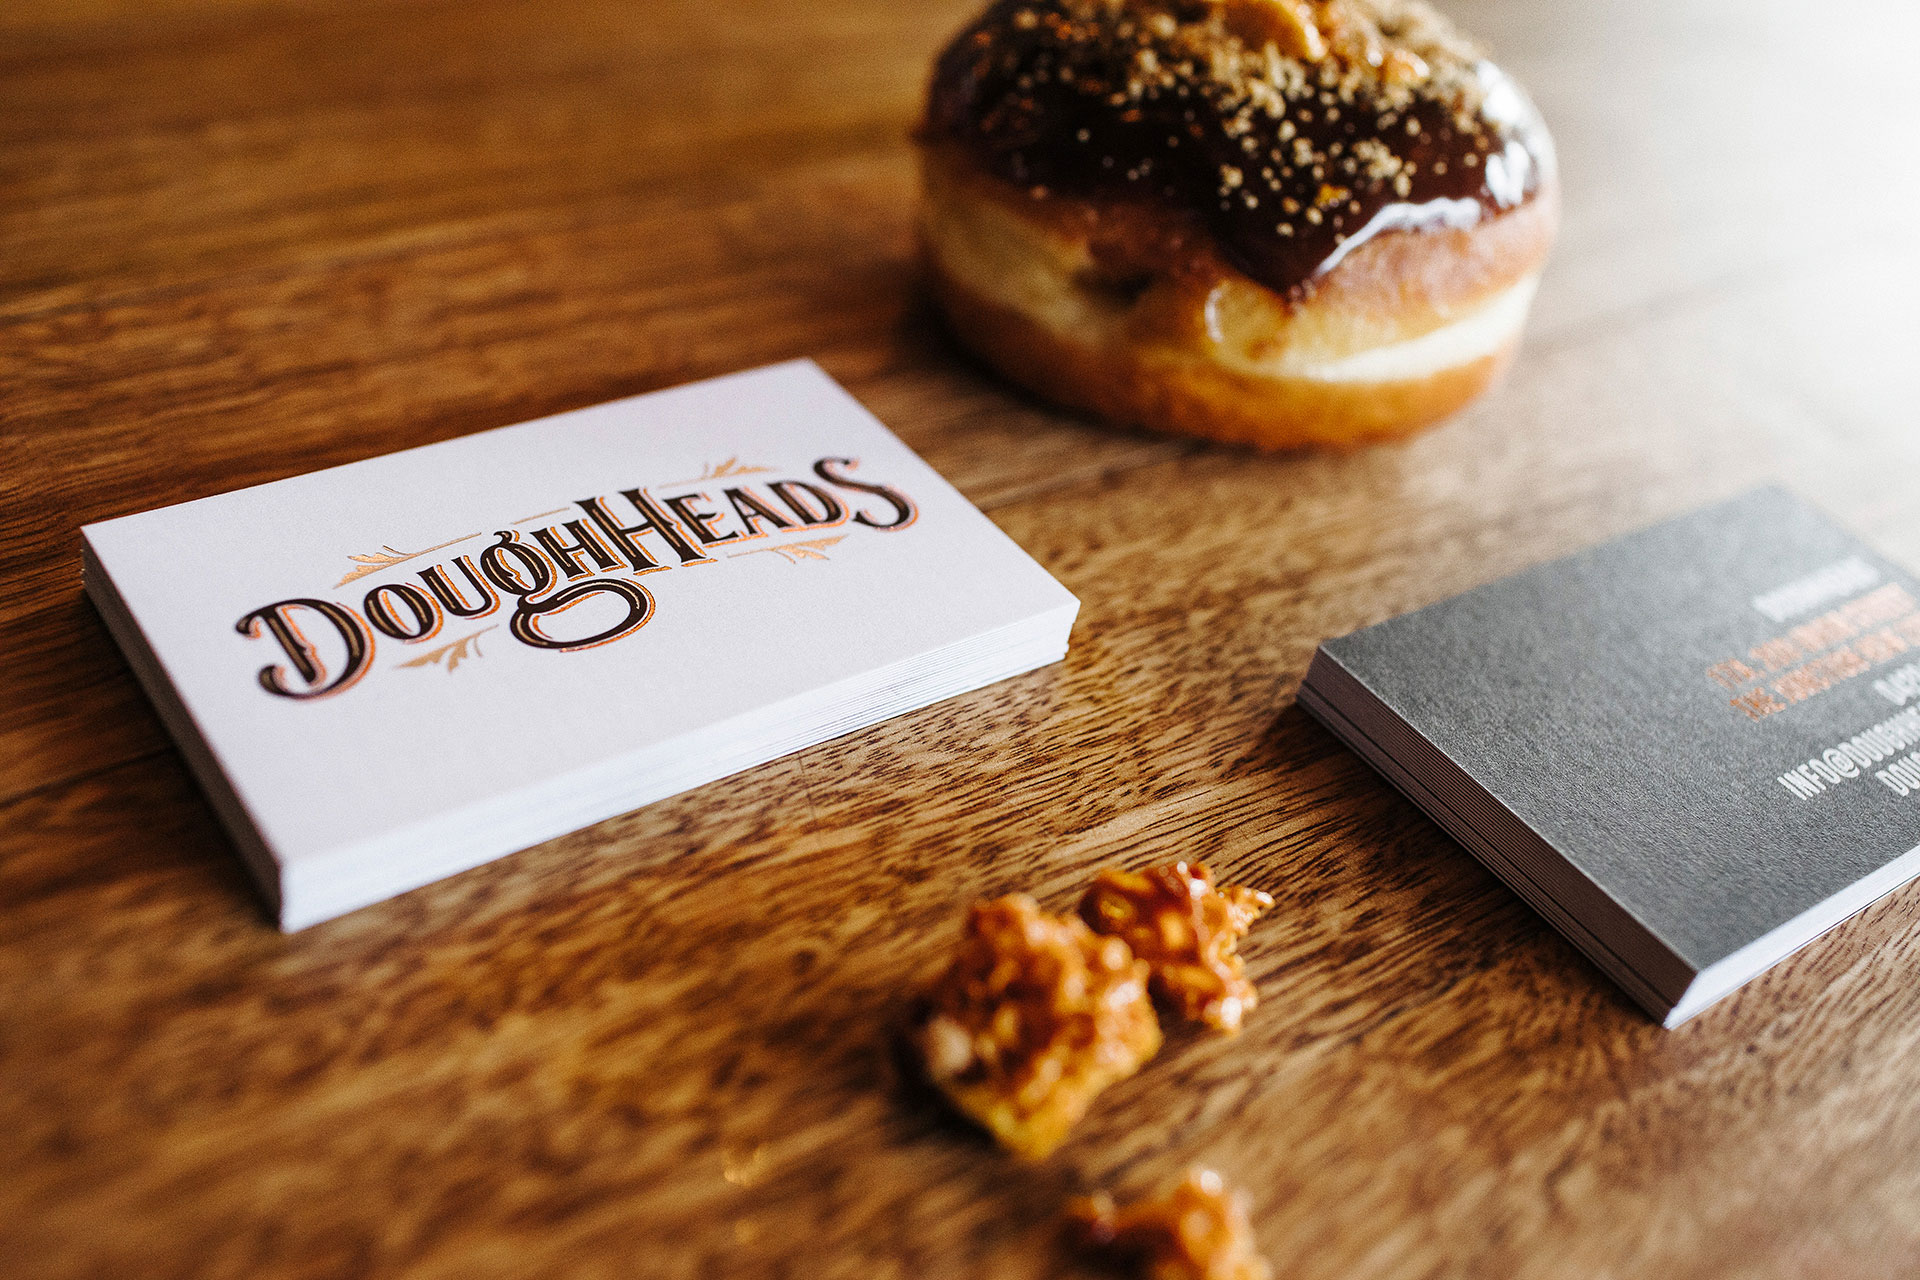 Pocket Design. Doughheads Branding Design